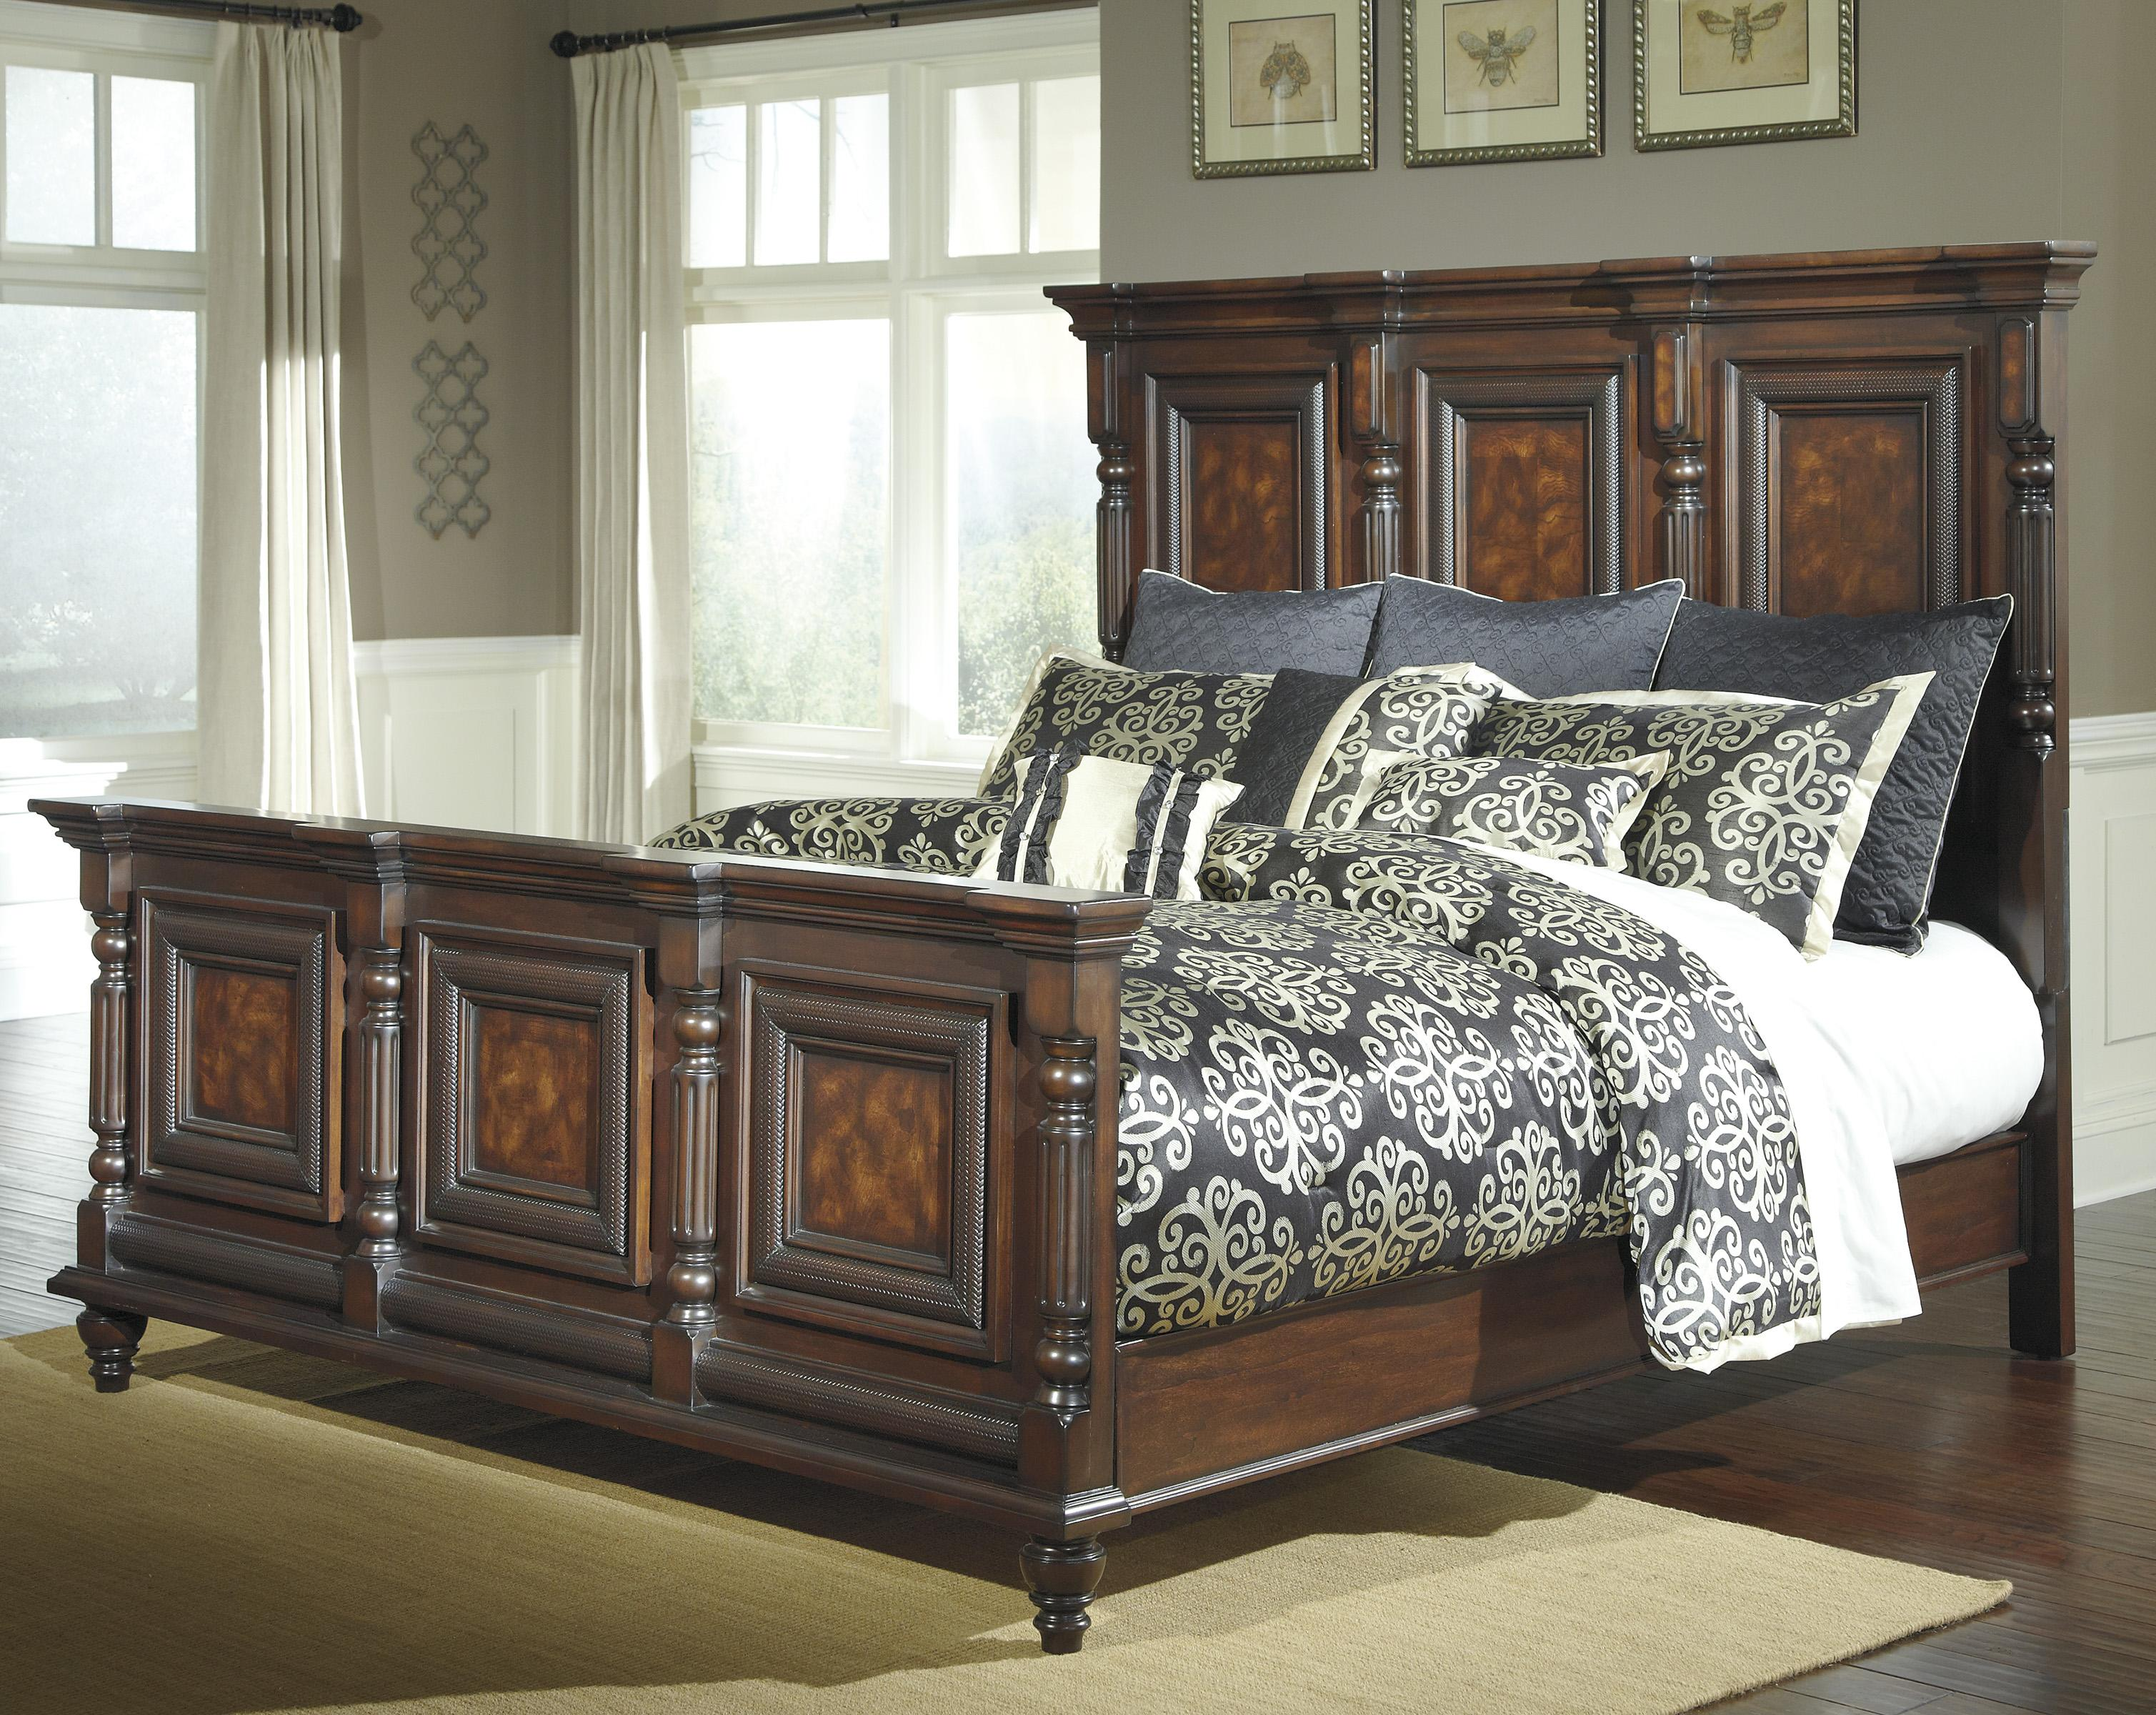 Ashley furniture key town bedroom set key town truffle living room furniture from millennium by for Silverglade mansion bedroom set ashley furniture